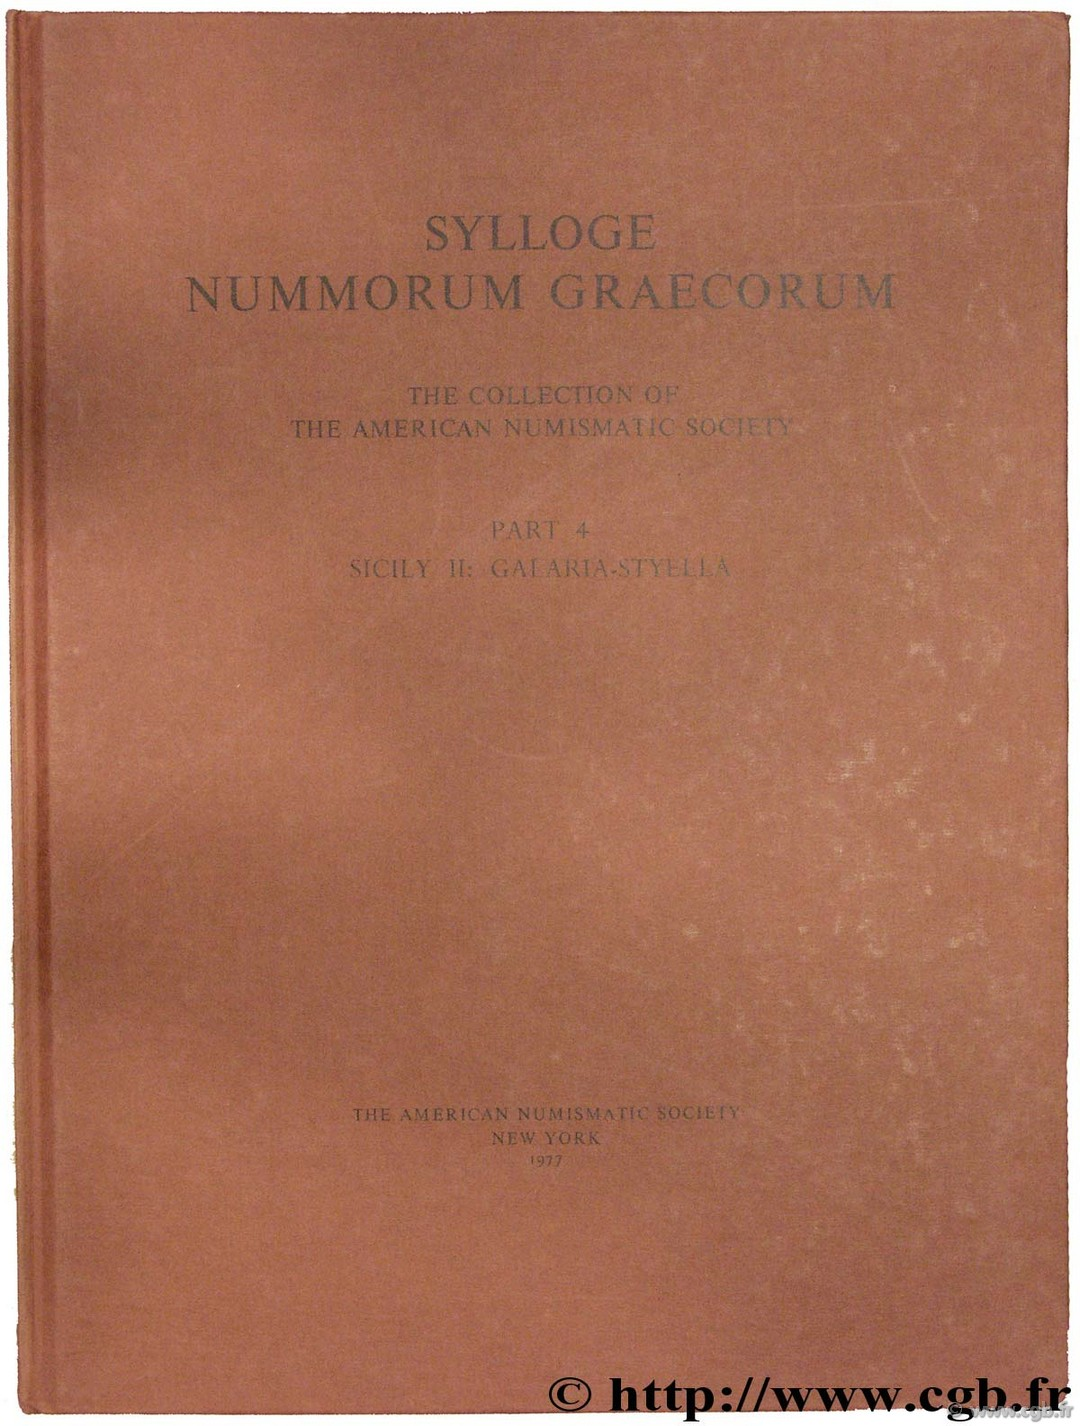 Sylloge Nummorum Graecorum (S.N.G.), The collection of the American Numismatic Society, part IV, Sicily II : Galaria - Styella